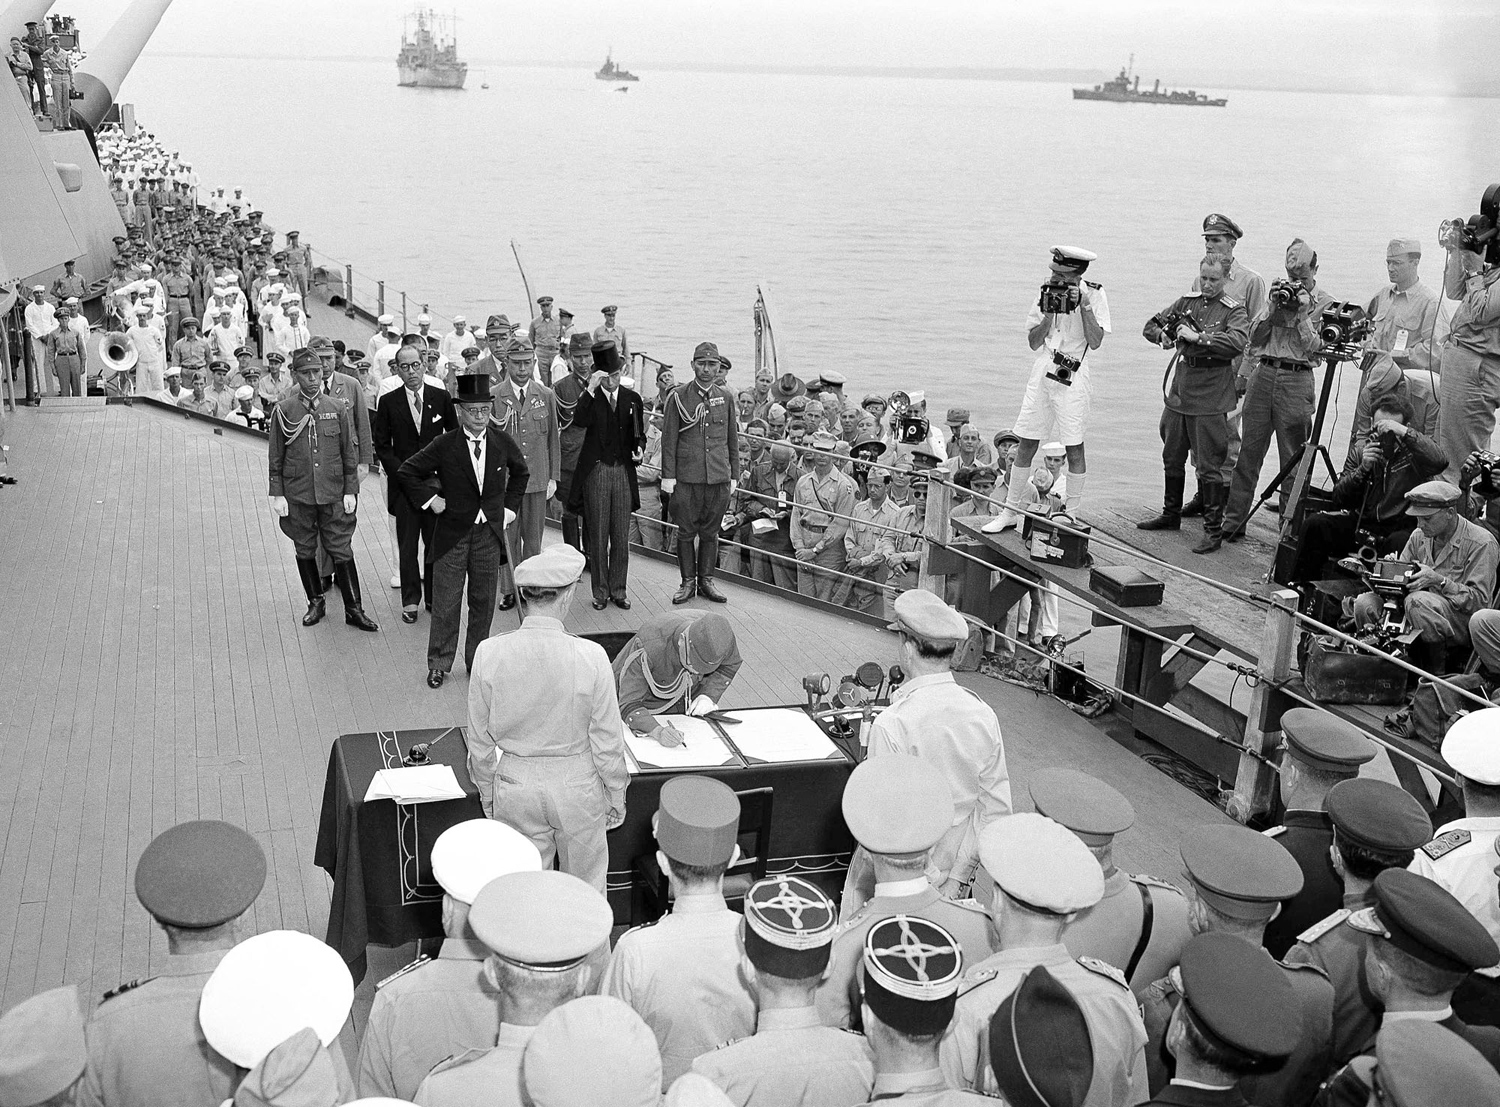 Aboard The Battleship Missouri As The Japanese Surrender Documents Were Signed In Tokyo Bay On